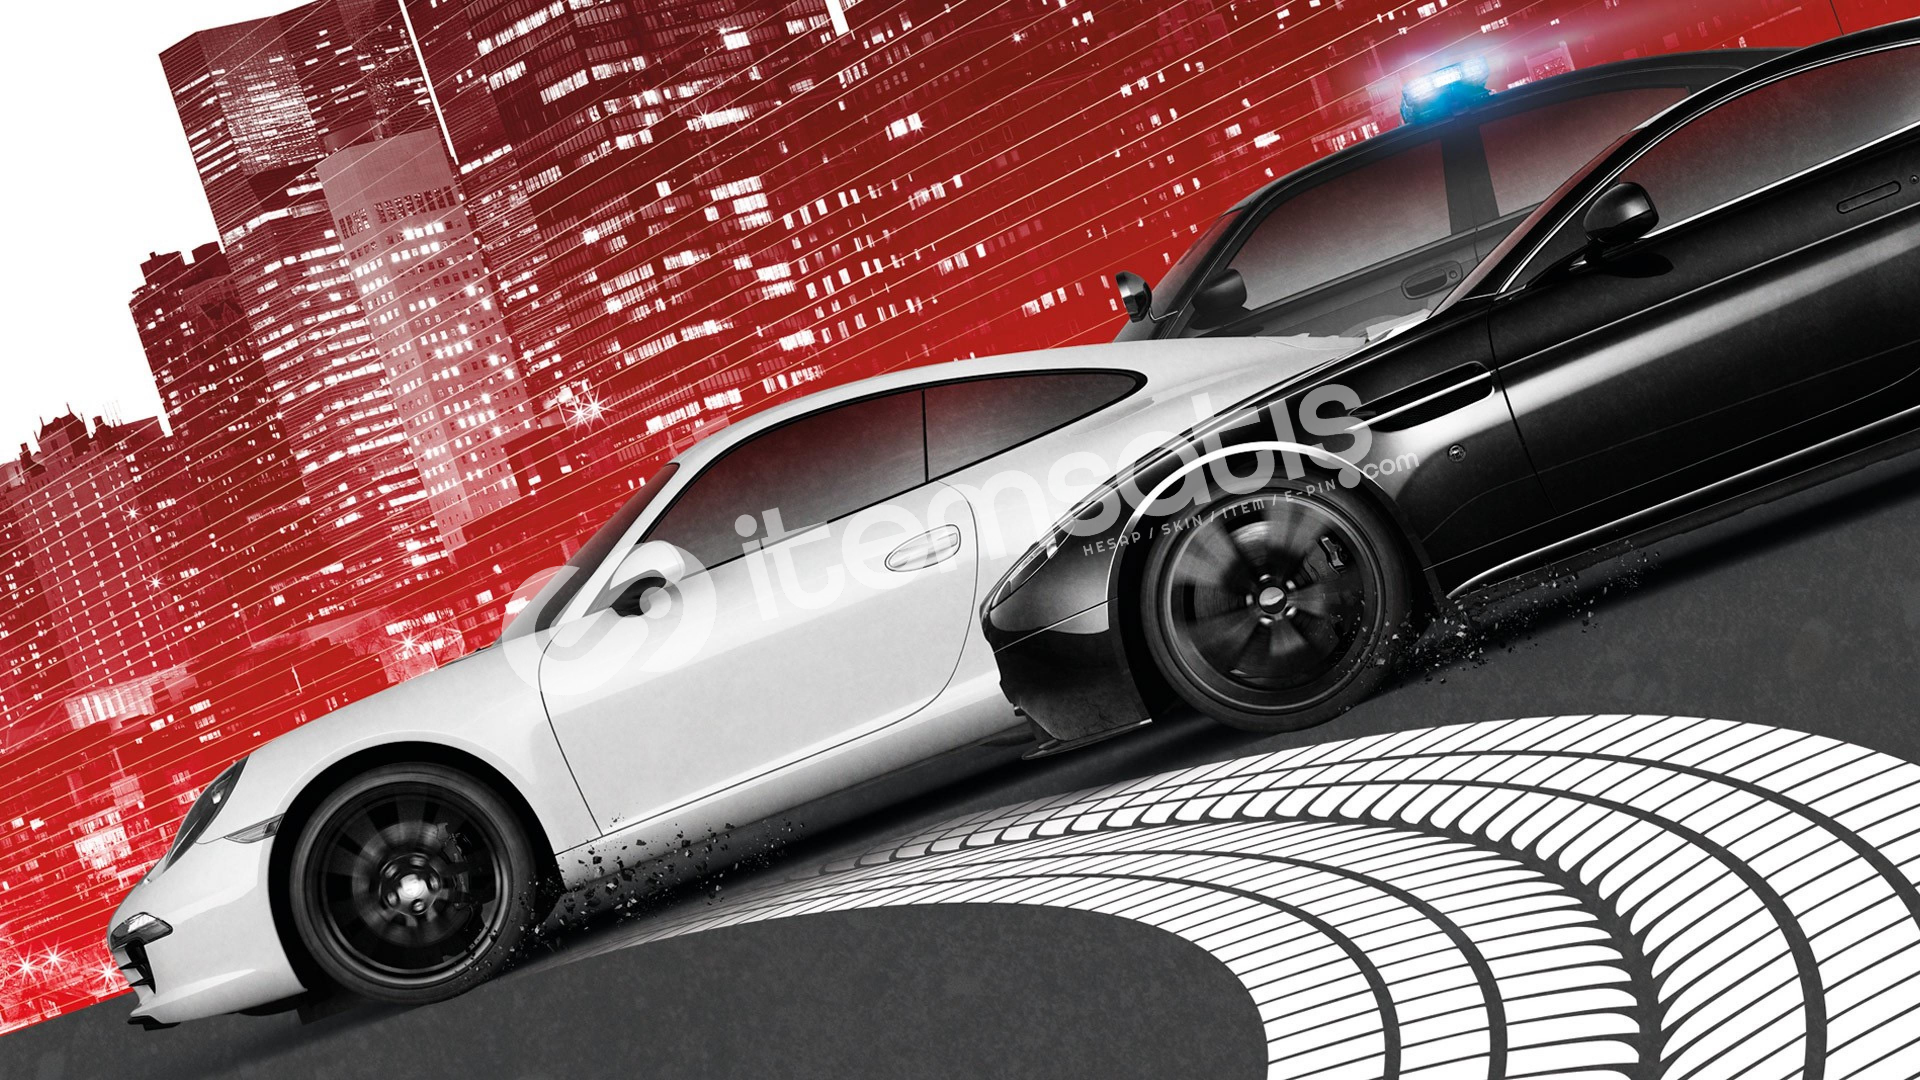 (ONLİNE) Need For Speed Most Wanted 2 (5.49TL)